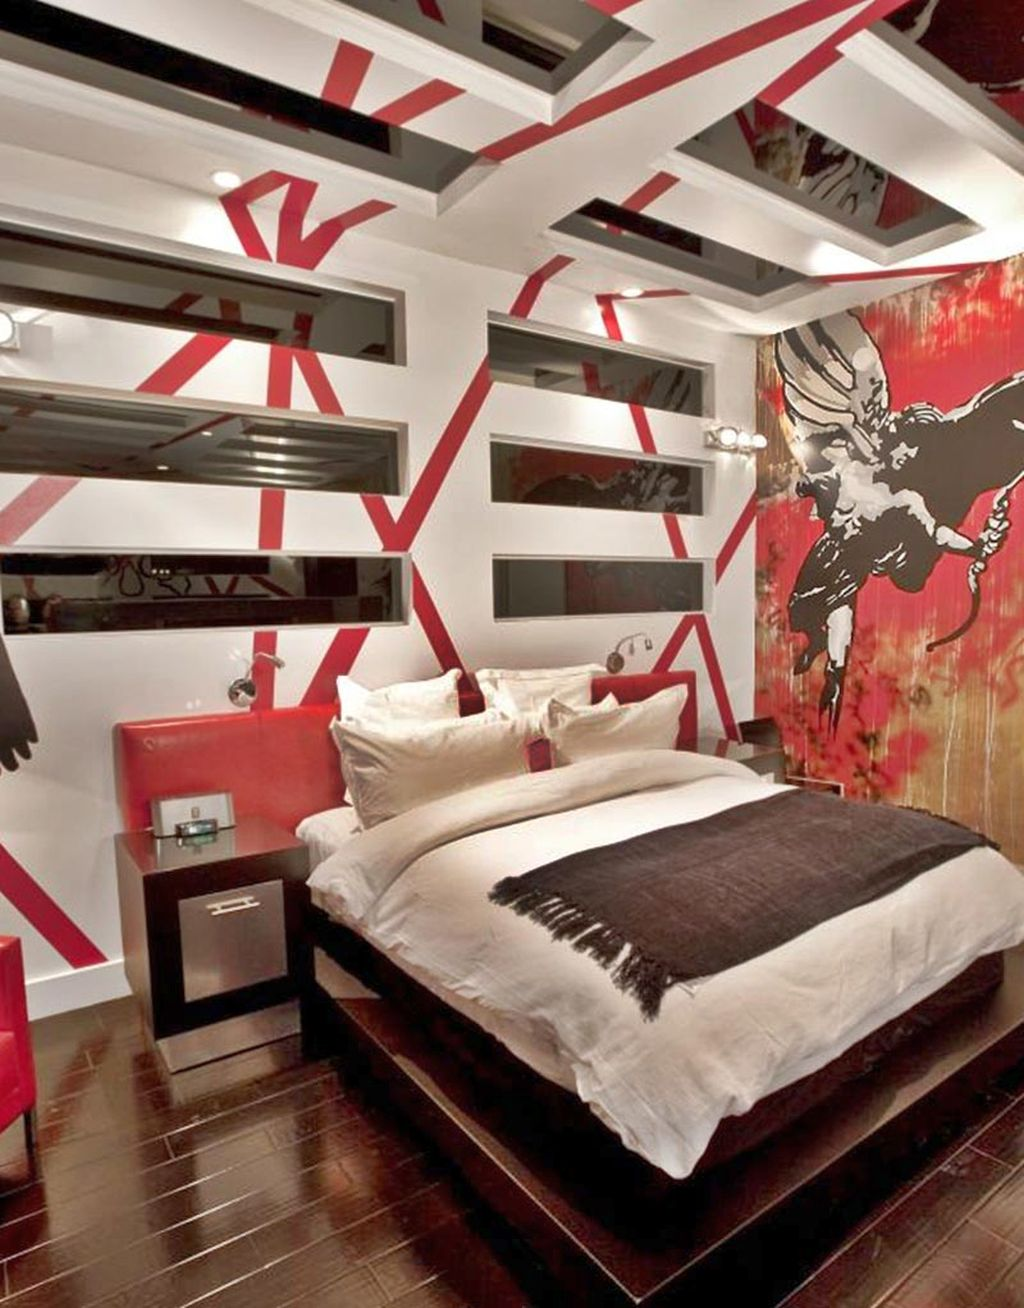 19 Cool Painting Ideas For Bedrooms You Ll Love For Sure